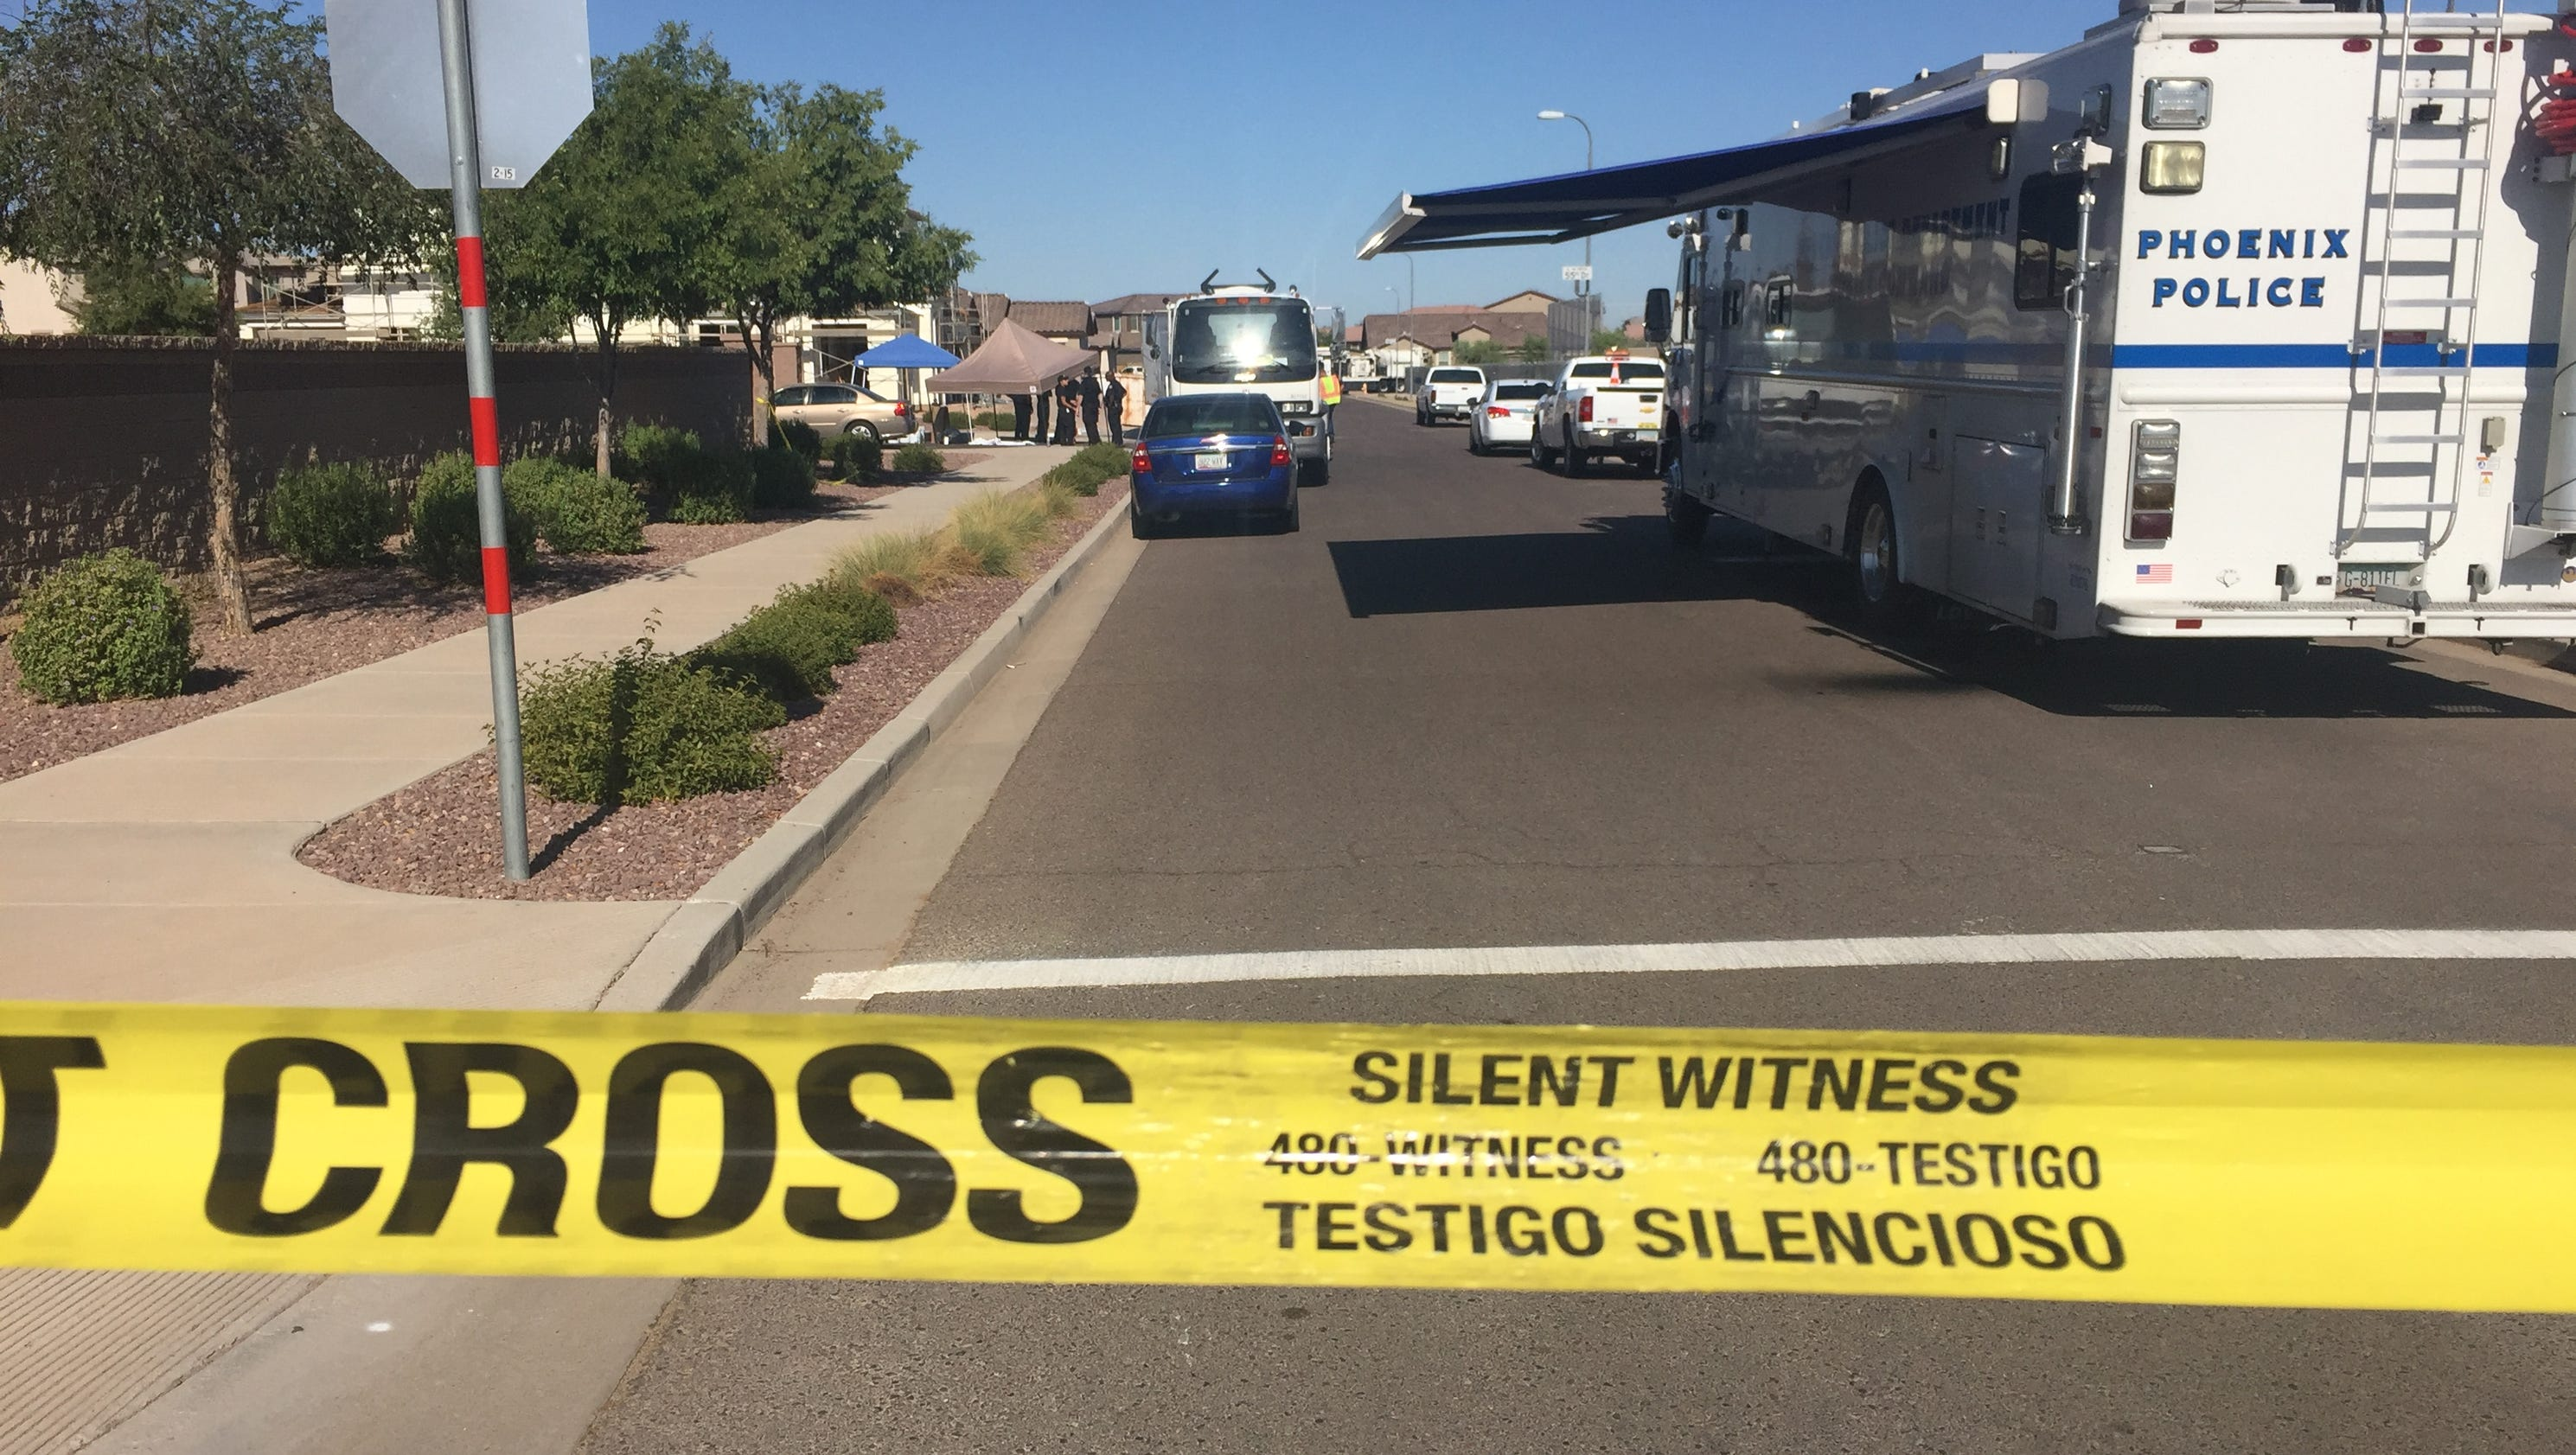 Phoenix police remains likely weren 39 t flushed down toilet for Today s interiors phoenix